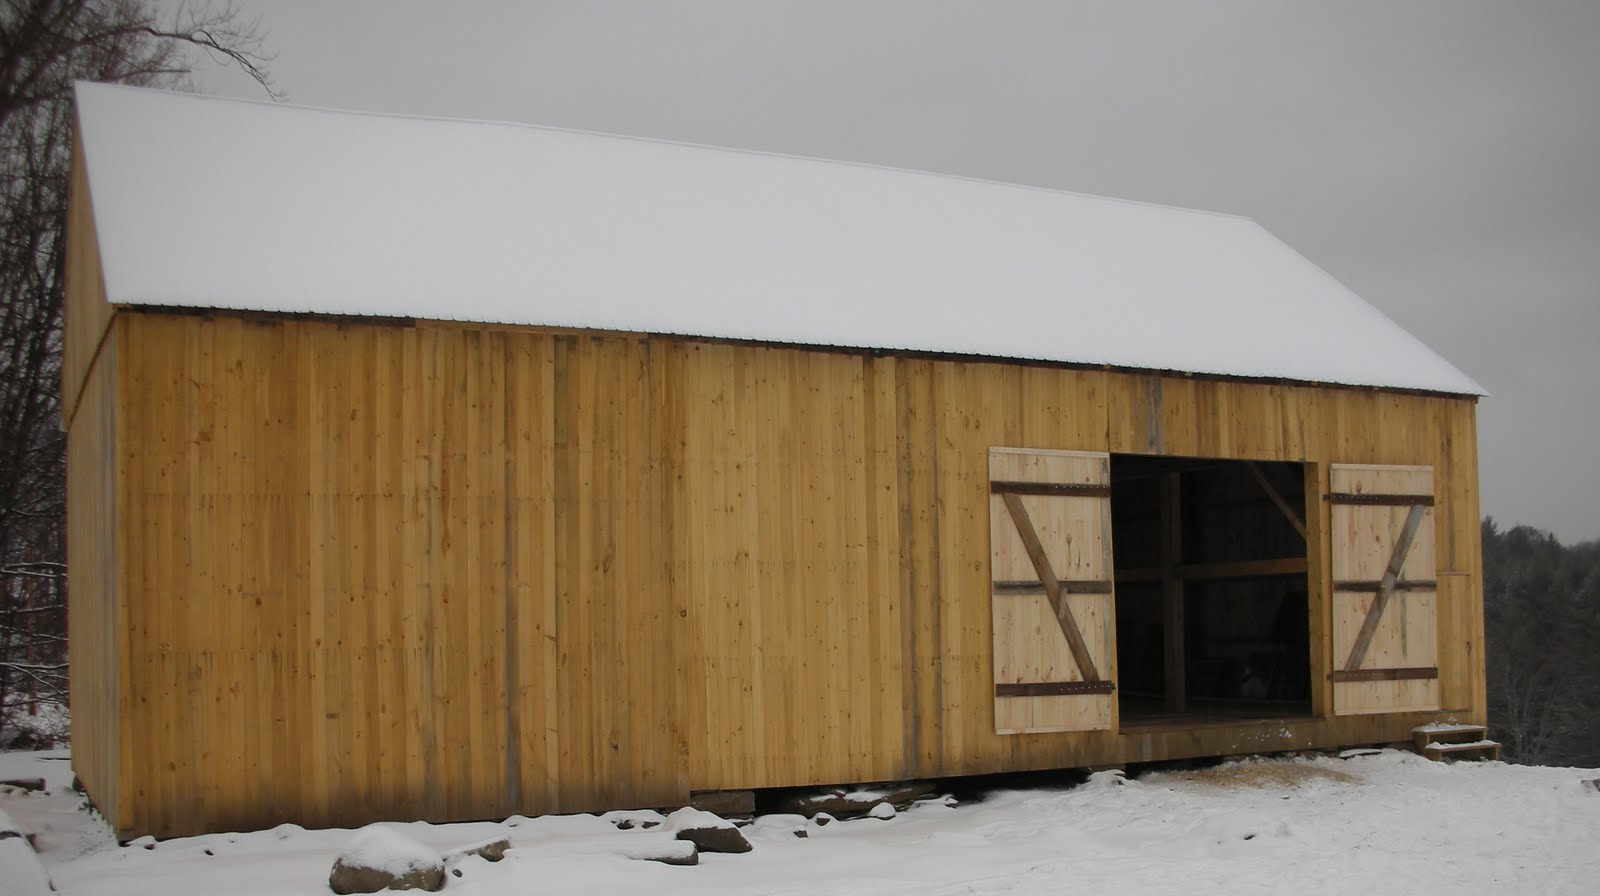 Here is the eave wall with the addition removed.